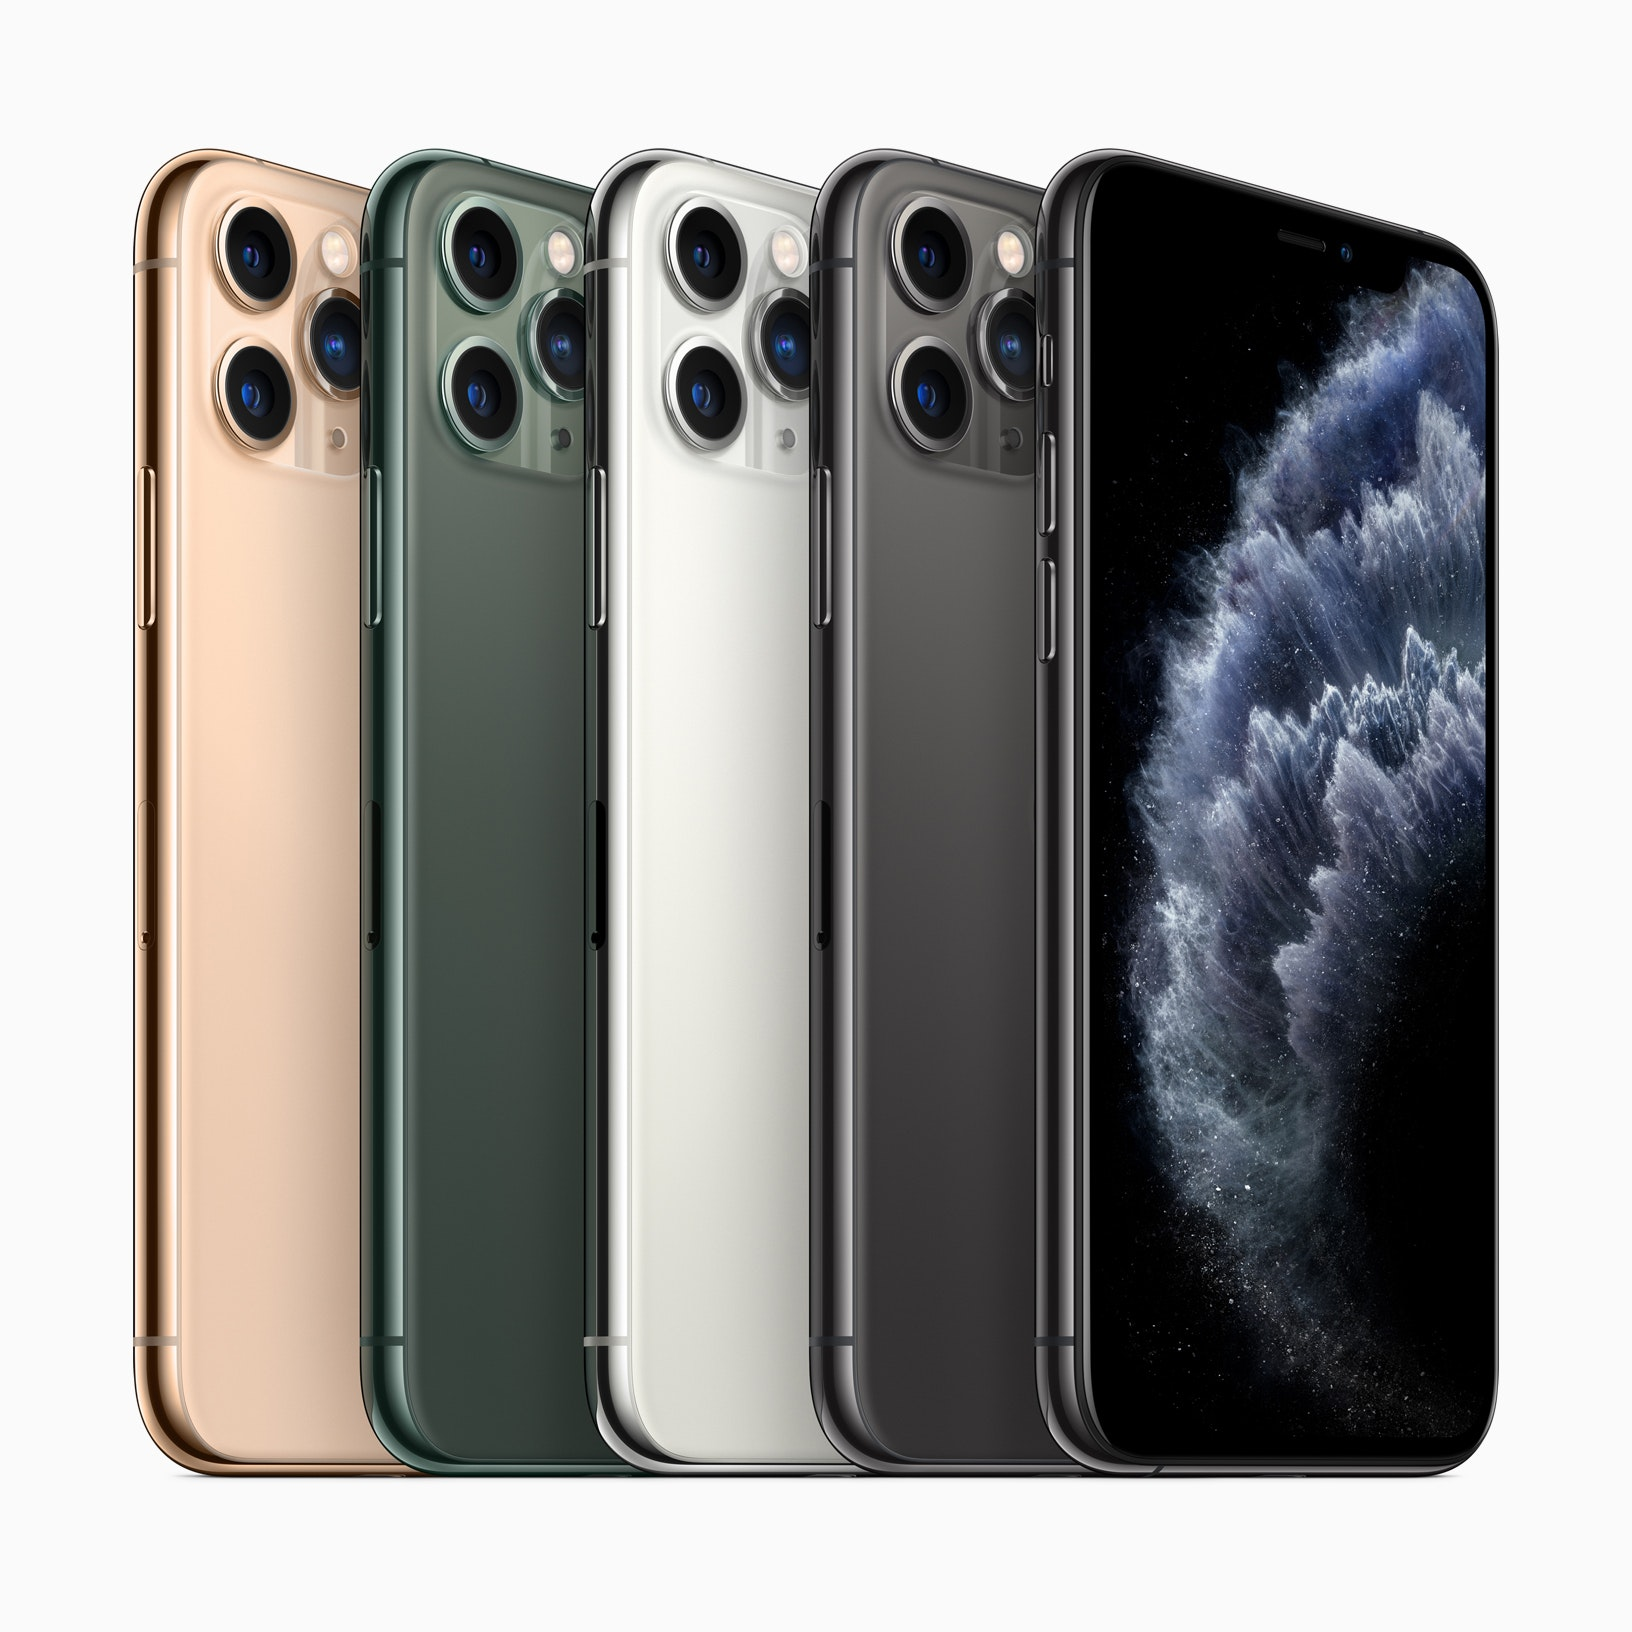 Apple iPhone 11 When Does It Come Out? Preorder, Delivery